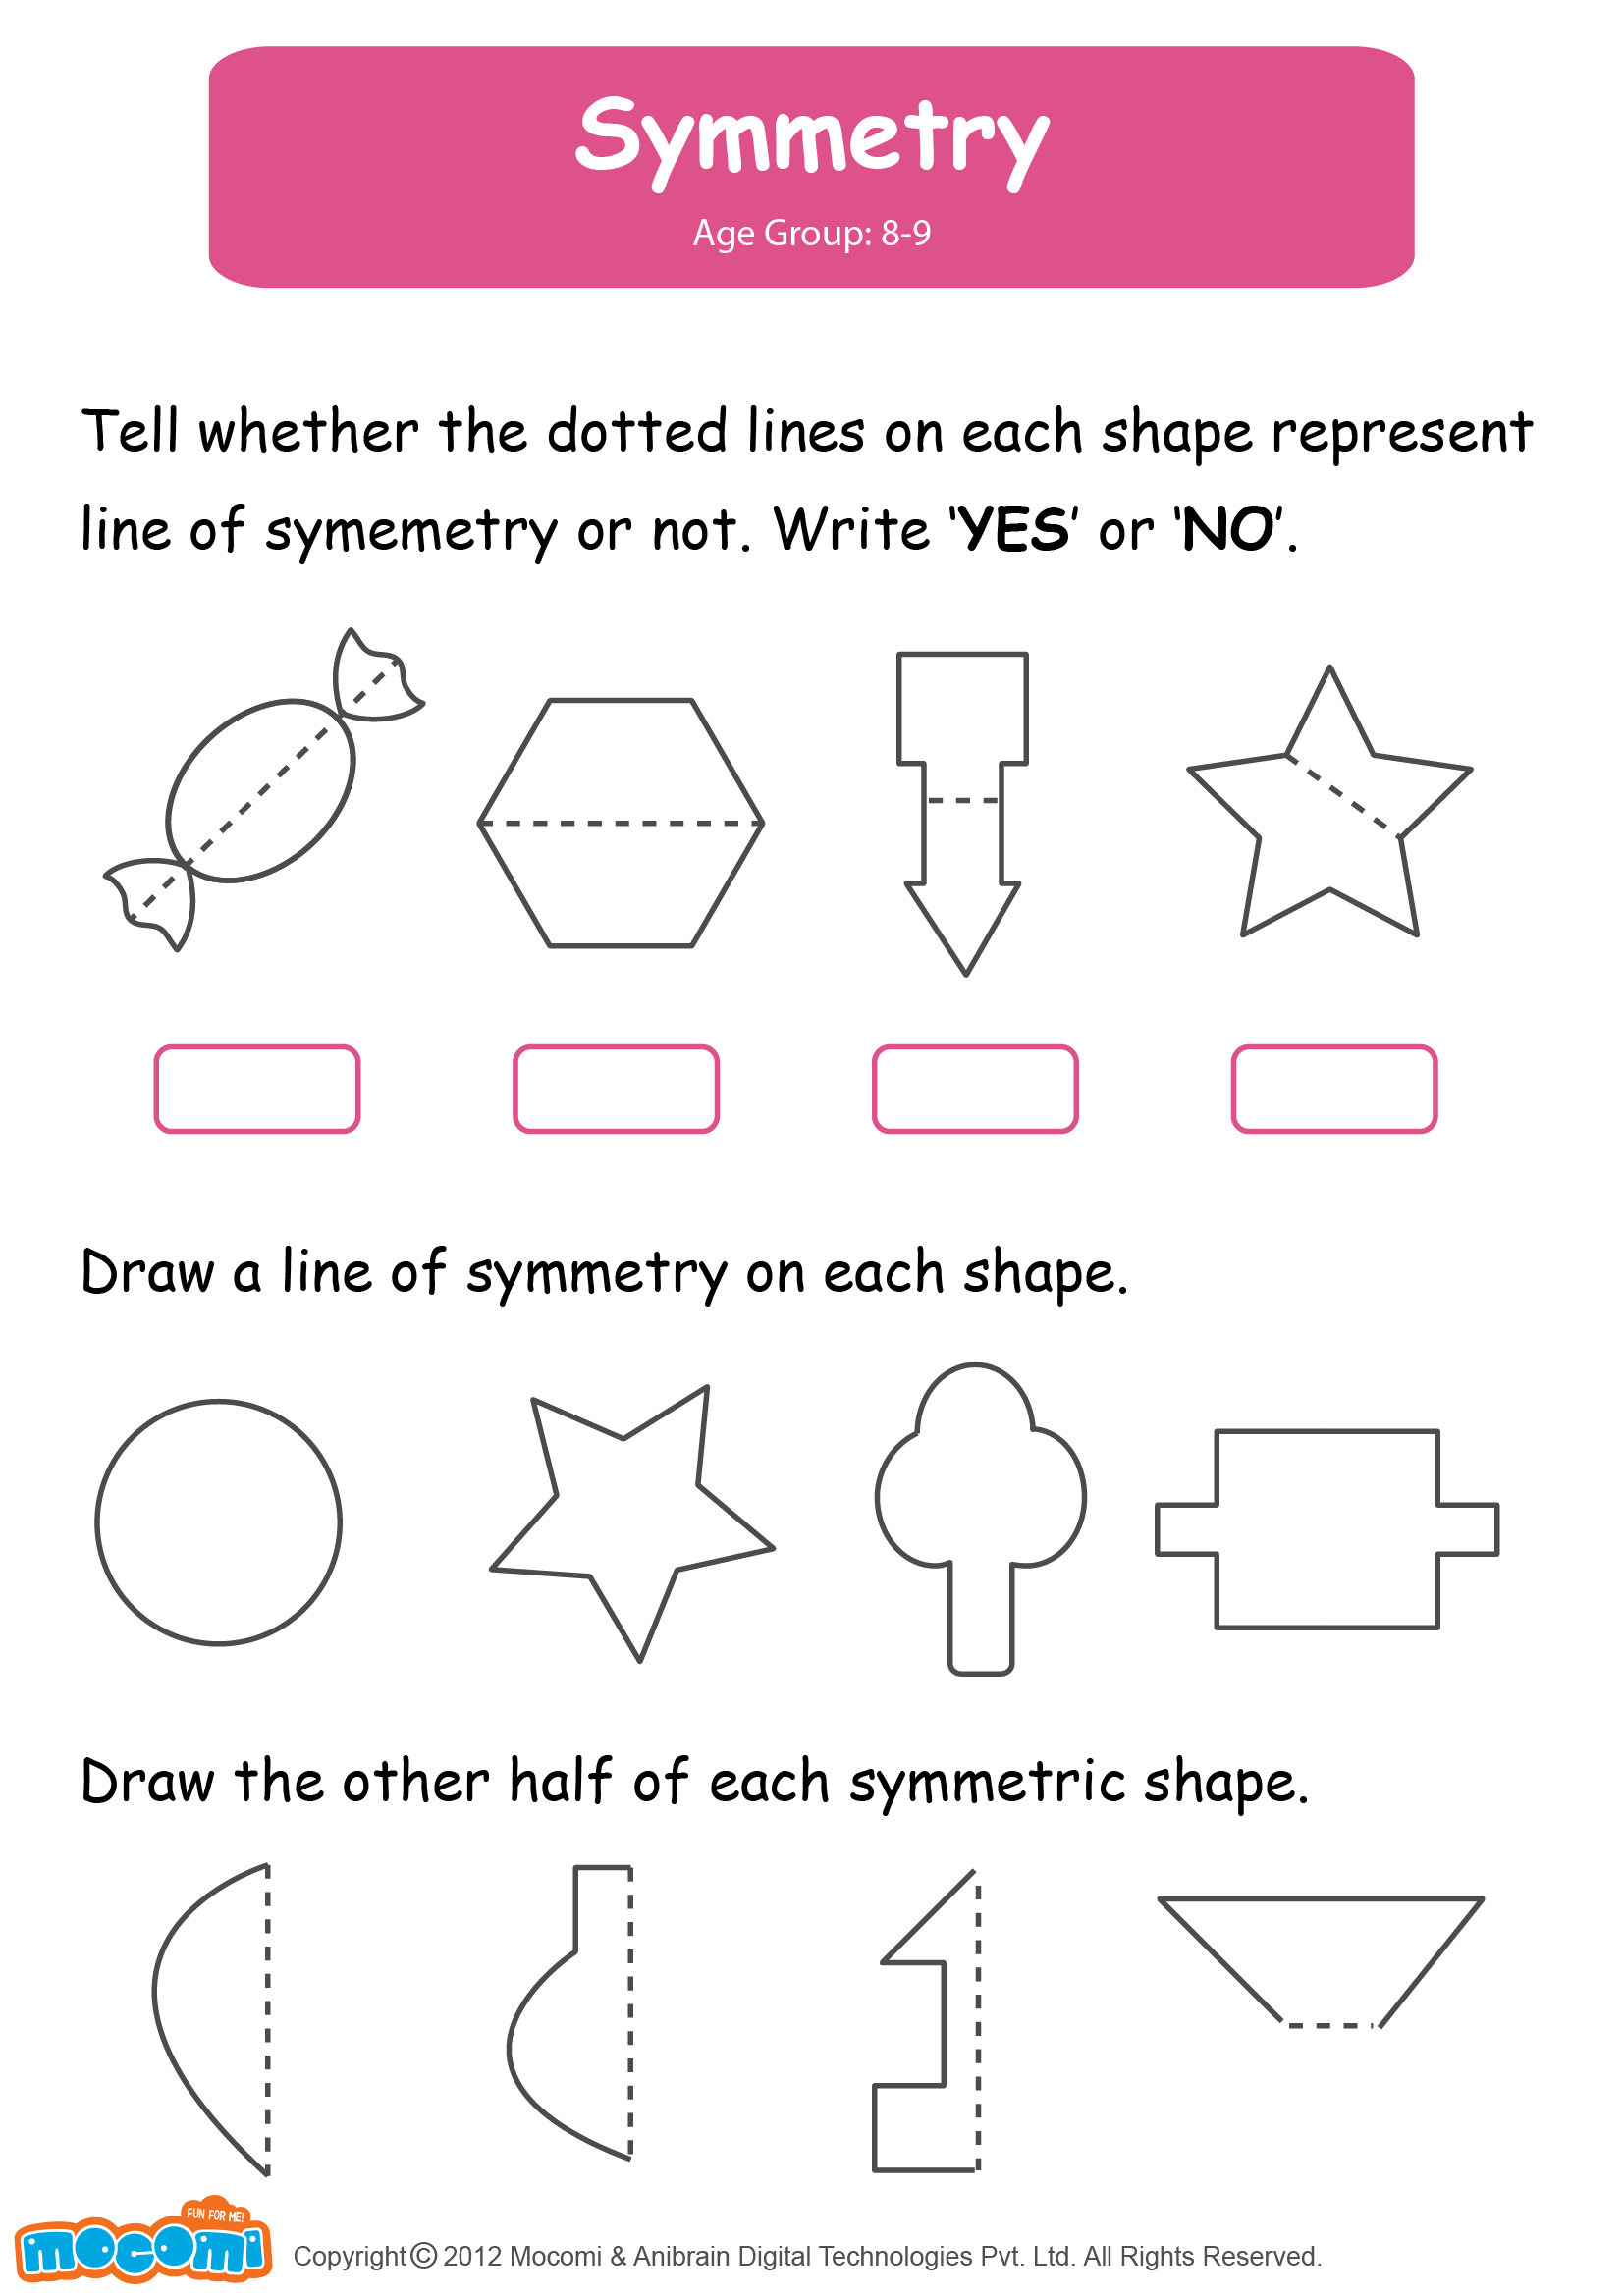 Worksheets Symmetry Worksheets symmetry worksheet for kids maths pinterest learn math more interesting worksheets and activities visit httpmocomi comlear